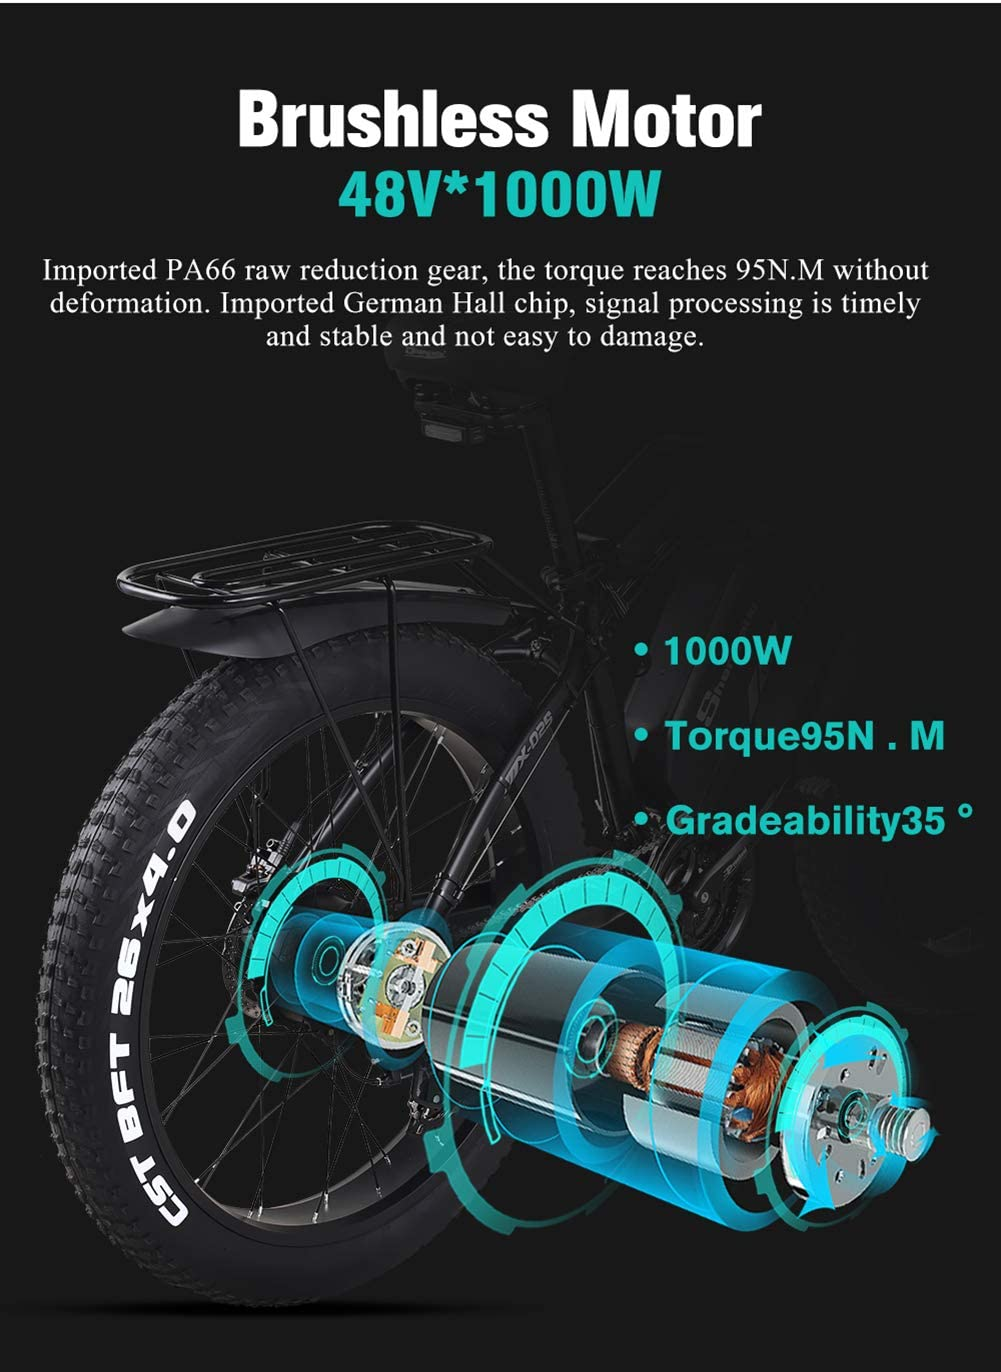 Shengmilo-MX02S 26 Inch Fat Tire Electric Bike 48V 1000W Motor Snow Electric Bicycle with Shimano 21 Speed Mountain Electric Bicycle Pedal Assist Lithium Battery Hydraulic Disc Brake